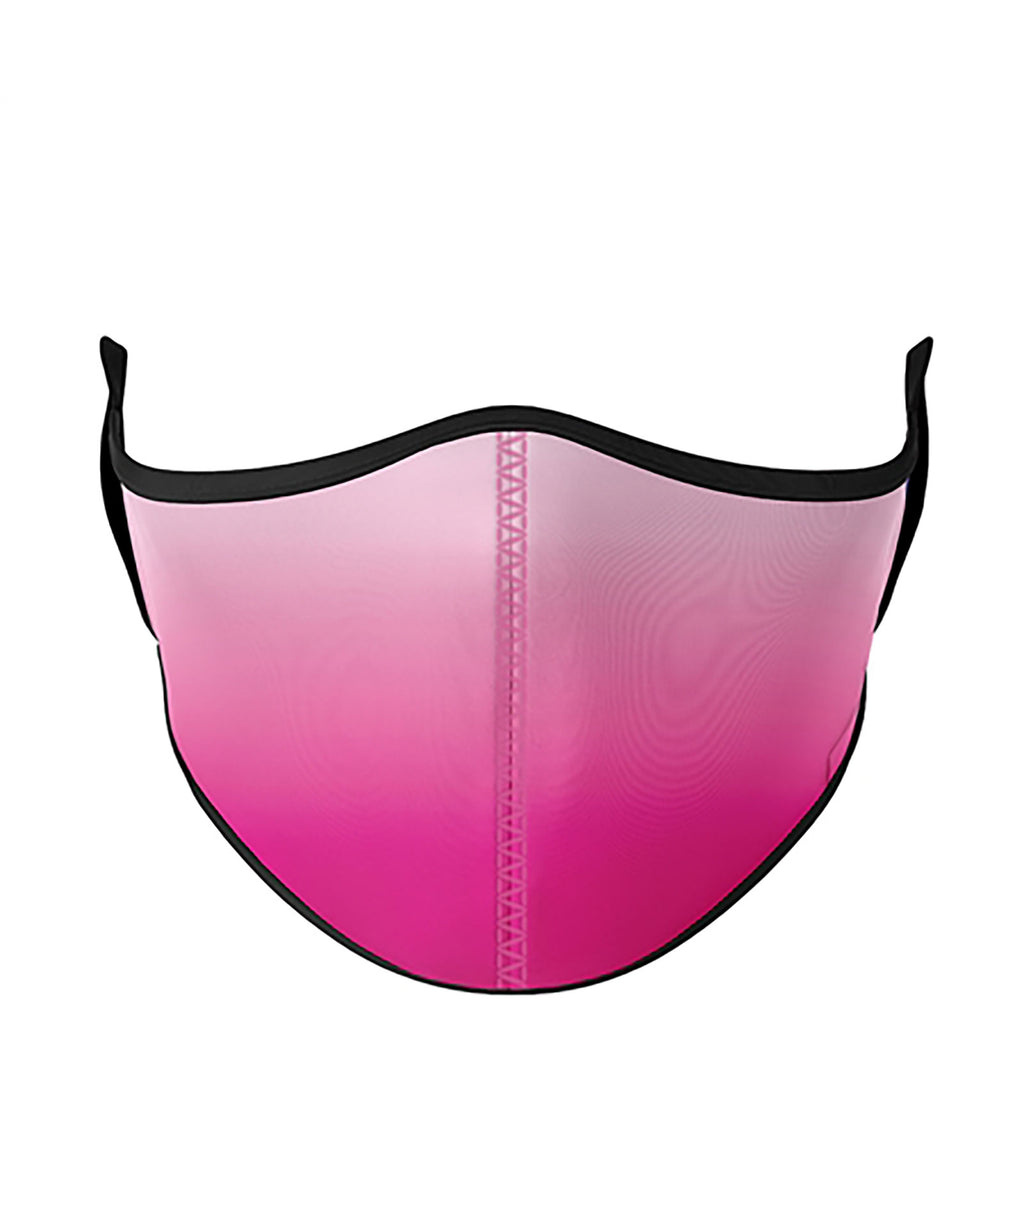 Top Trenz Pink Ombre One Size Ages 8+ Face Mask